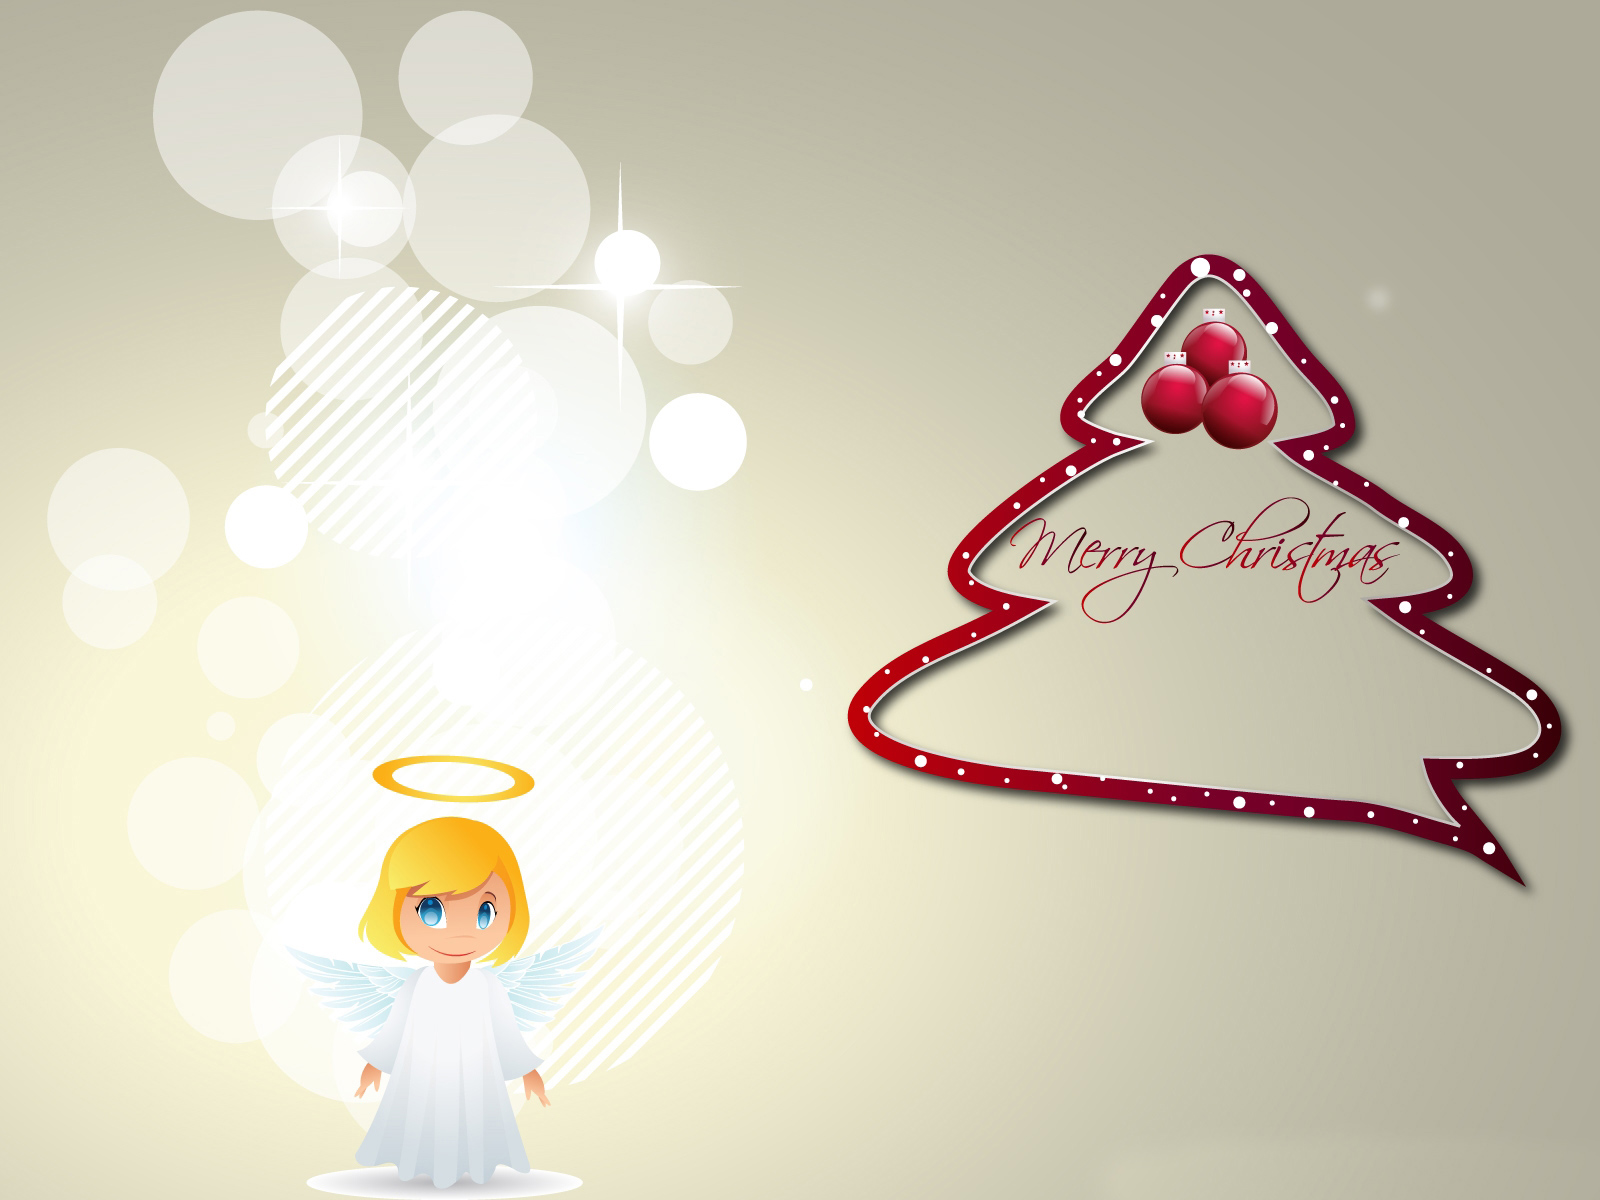 Merry Christmas Angel computer desktop wallpapers pictures images 1600x1200